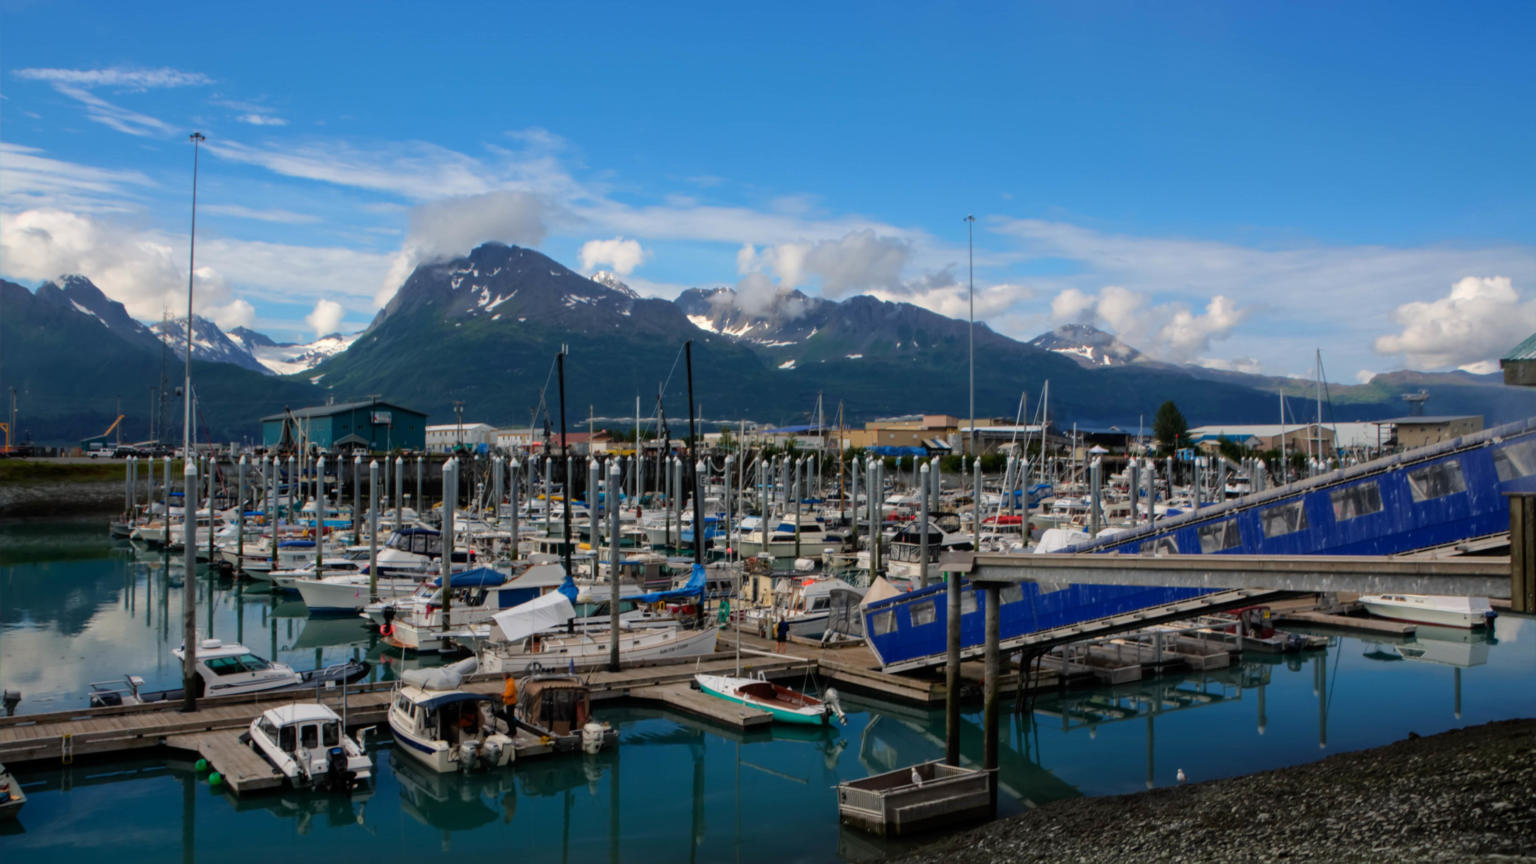 A seafood worker in Valdez has COVID-19, but state health officials don't know how he got it